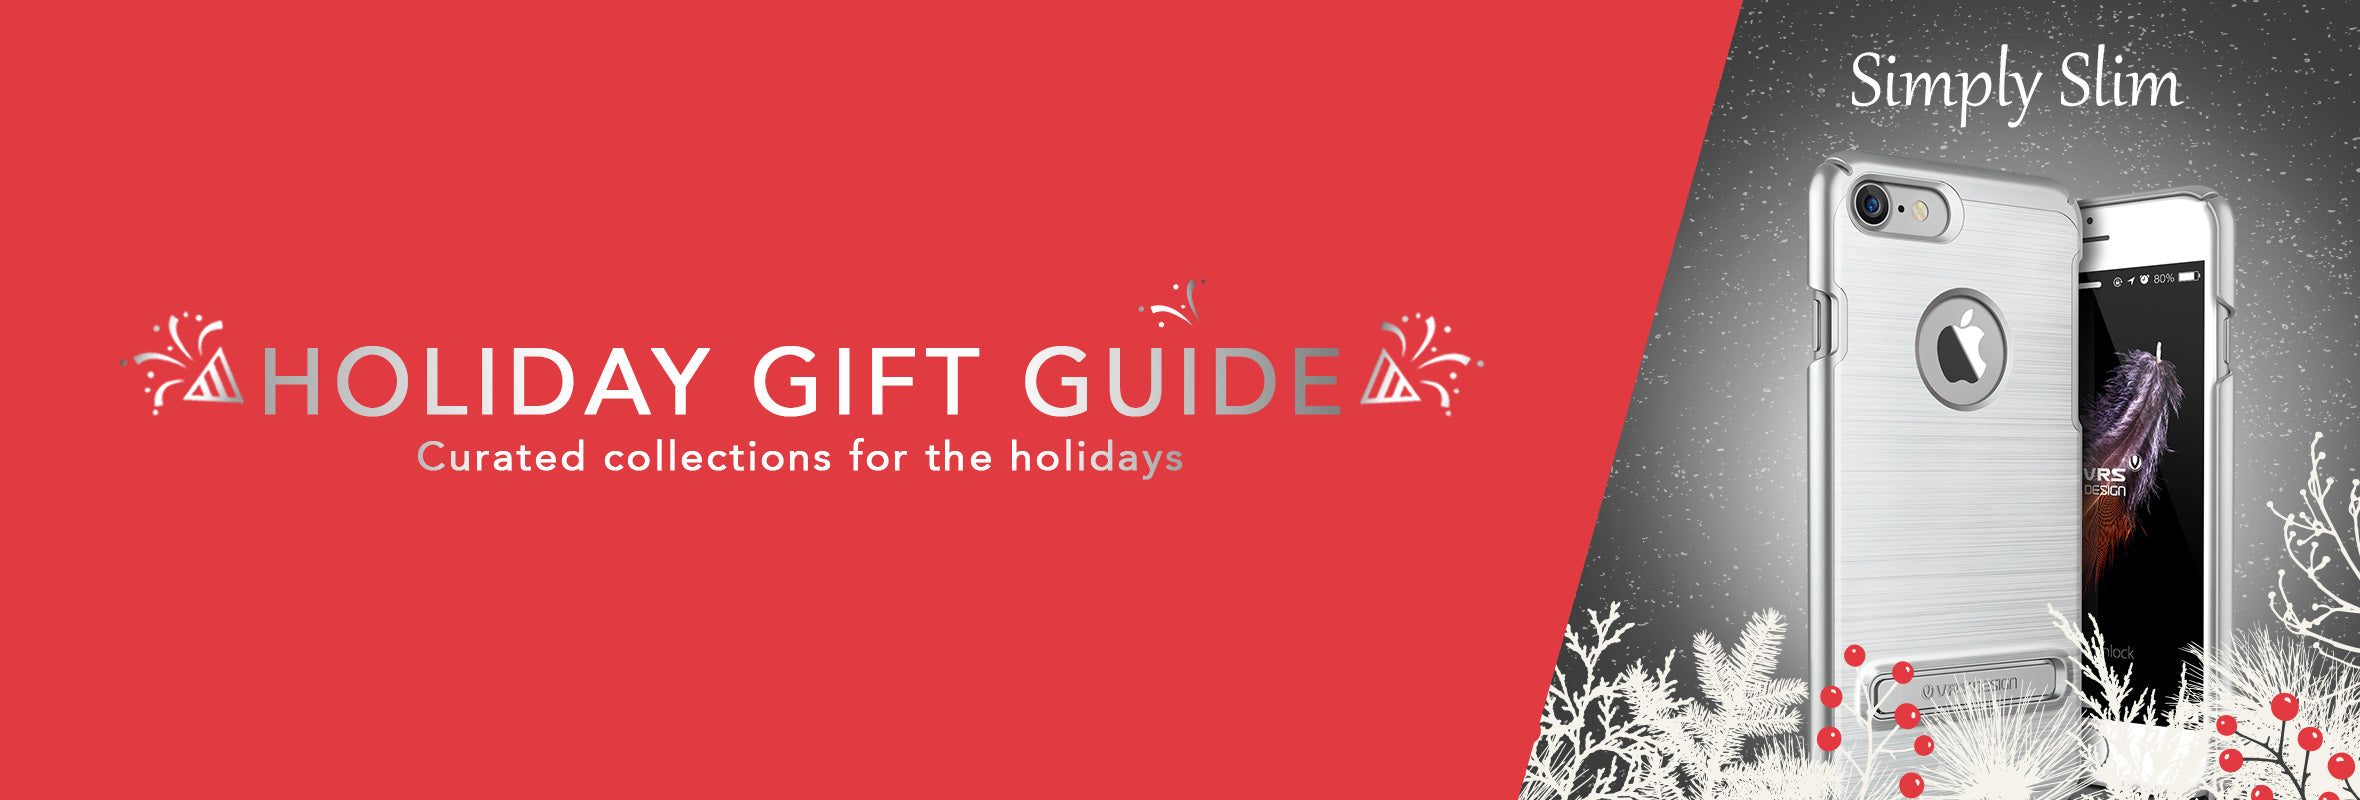 Holiday Gift Guide - Simply Slim